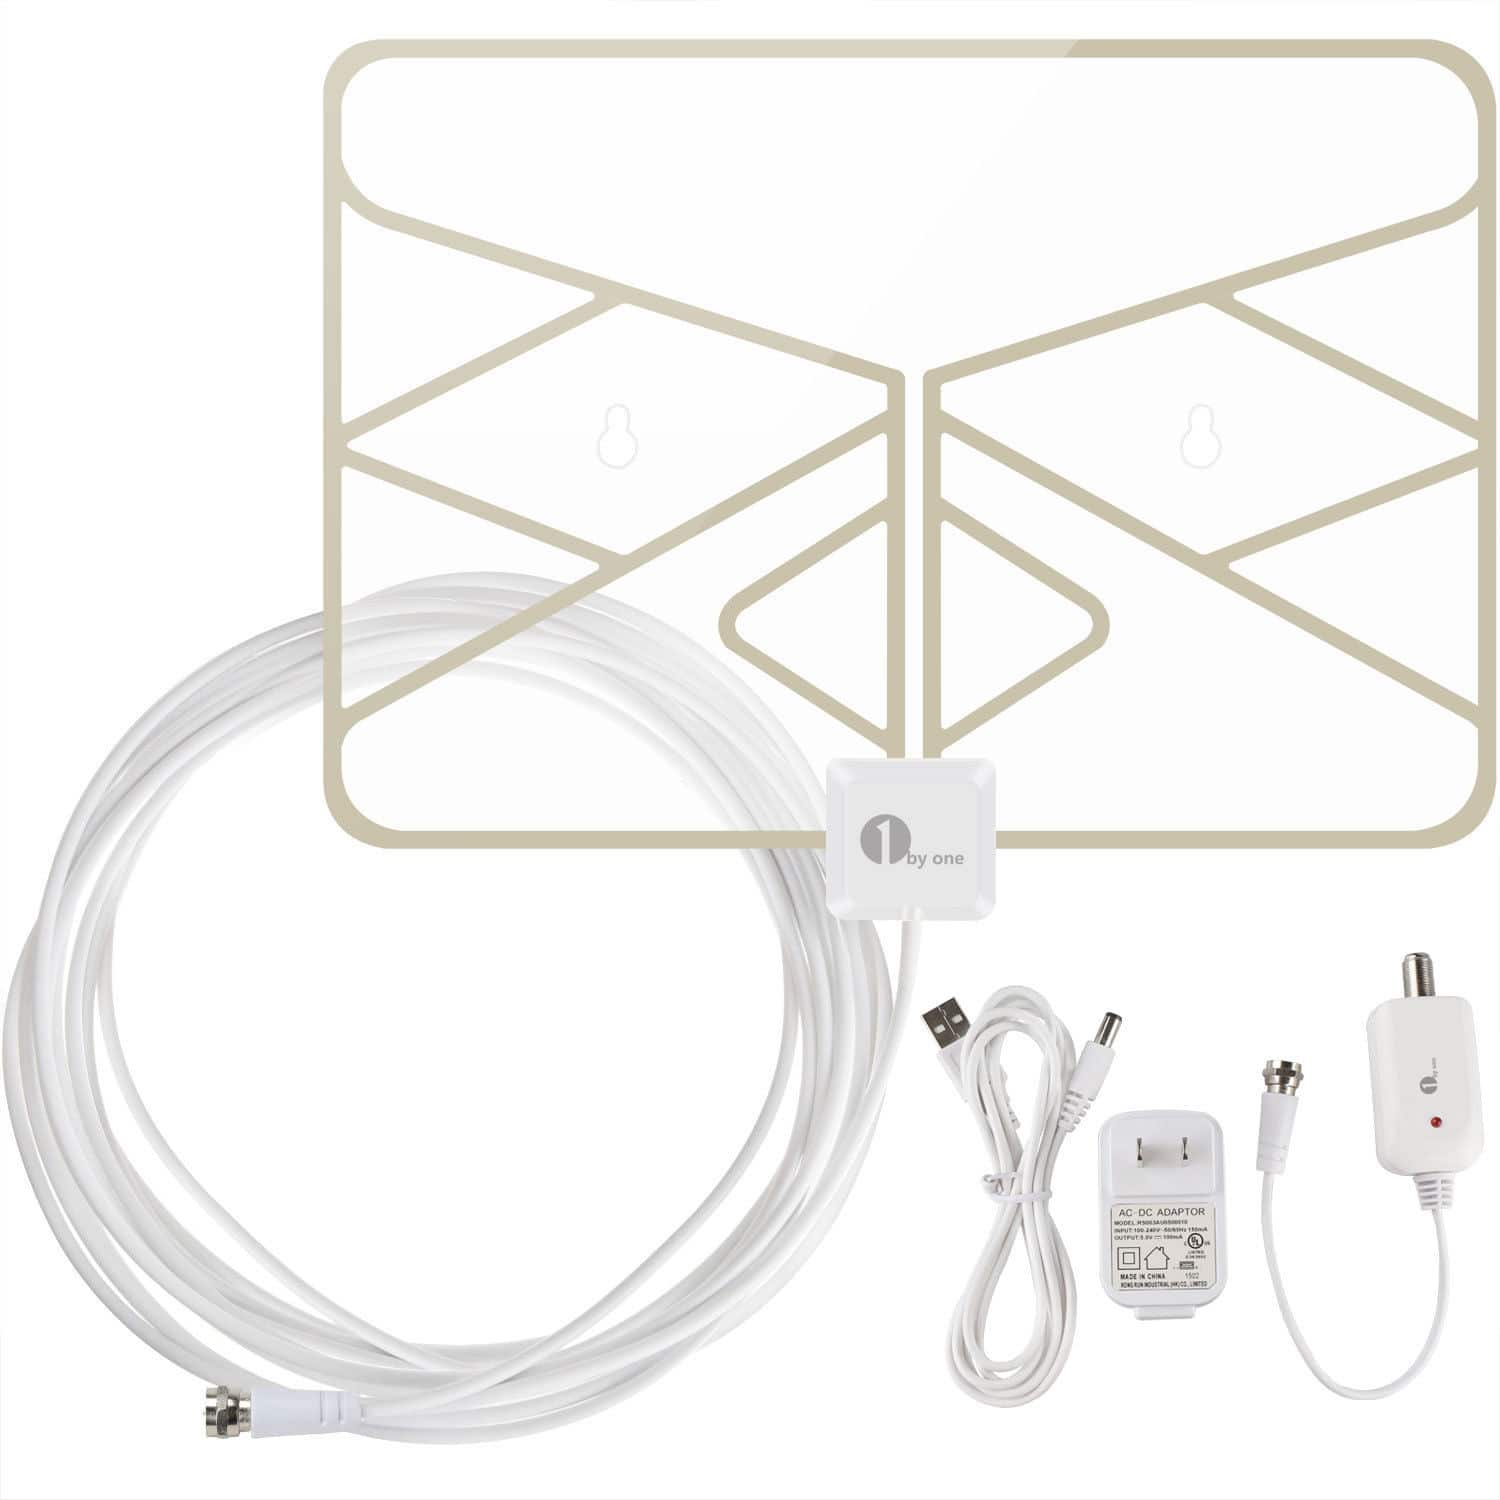 50-Mile Digital Indoor Amplified Window (leaf) HDTV Antenna w/ 20Ft Cable $19 + free shipping